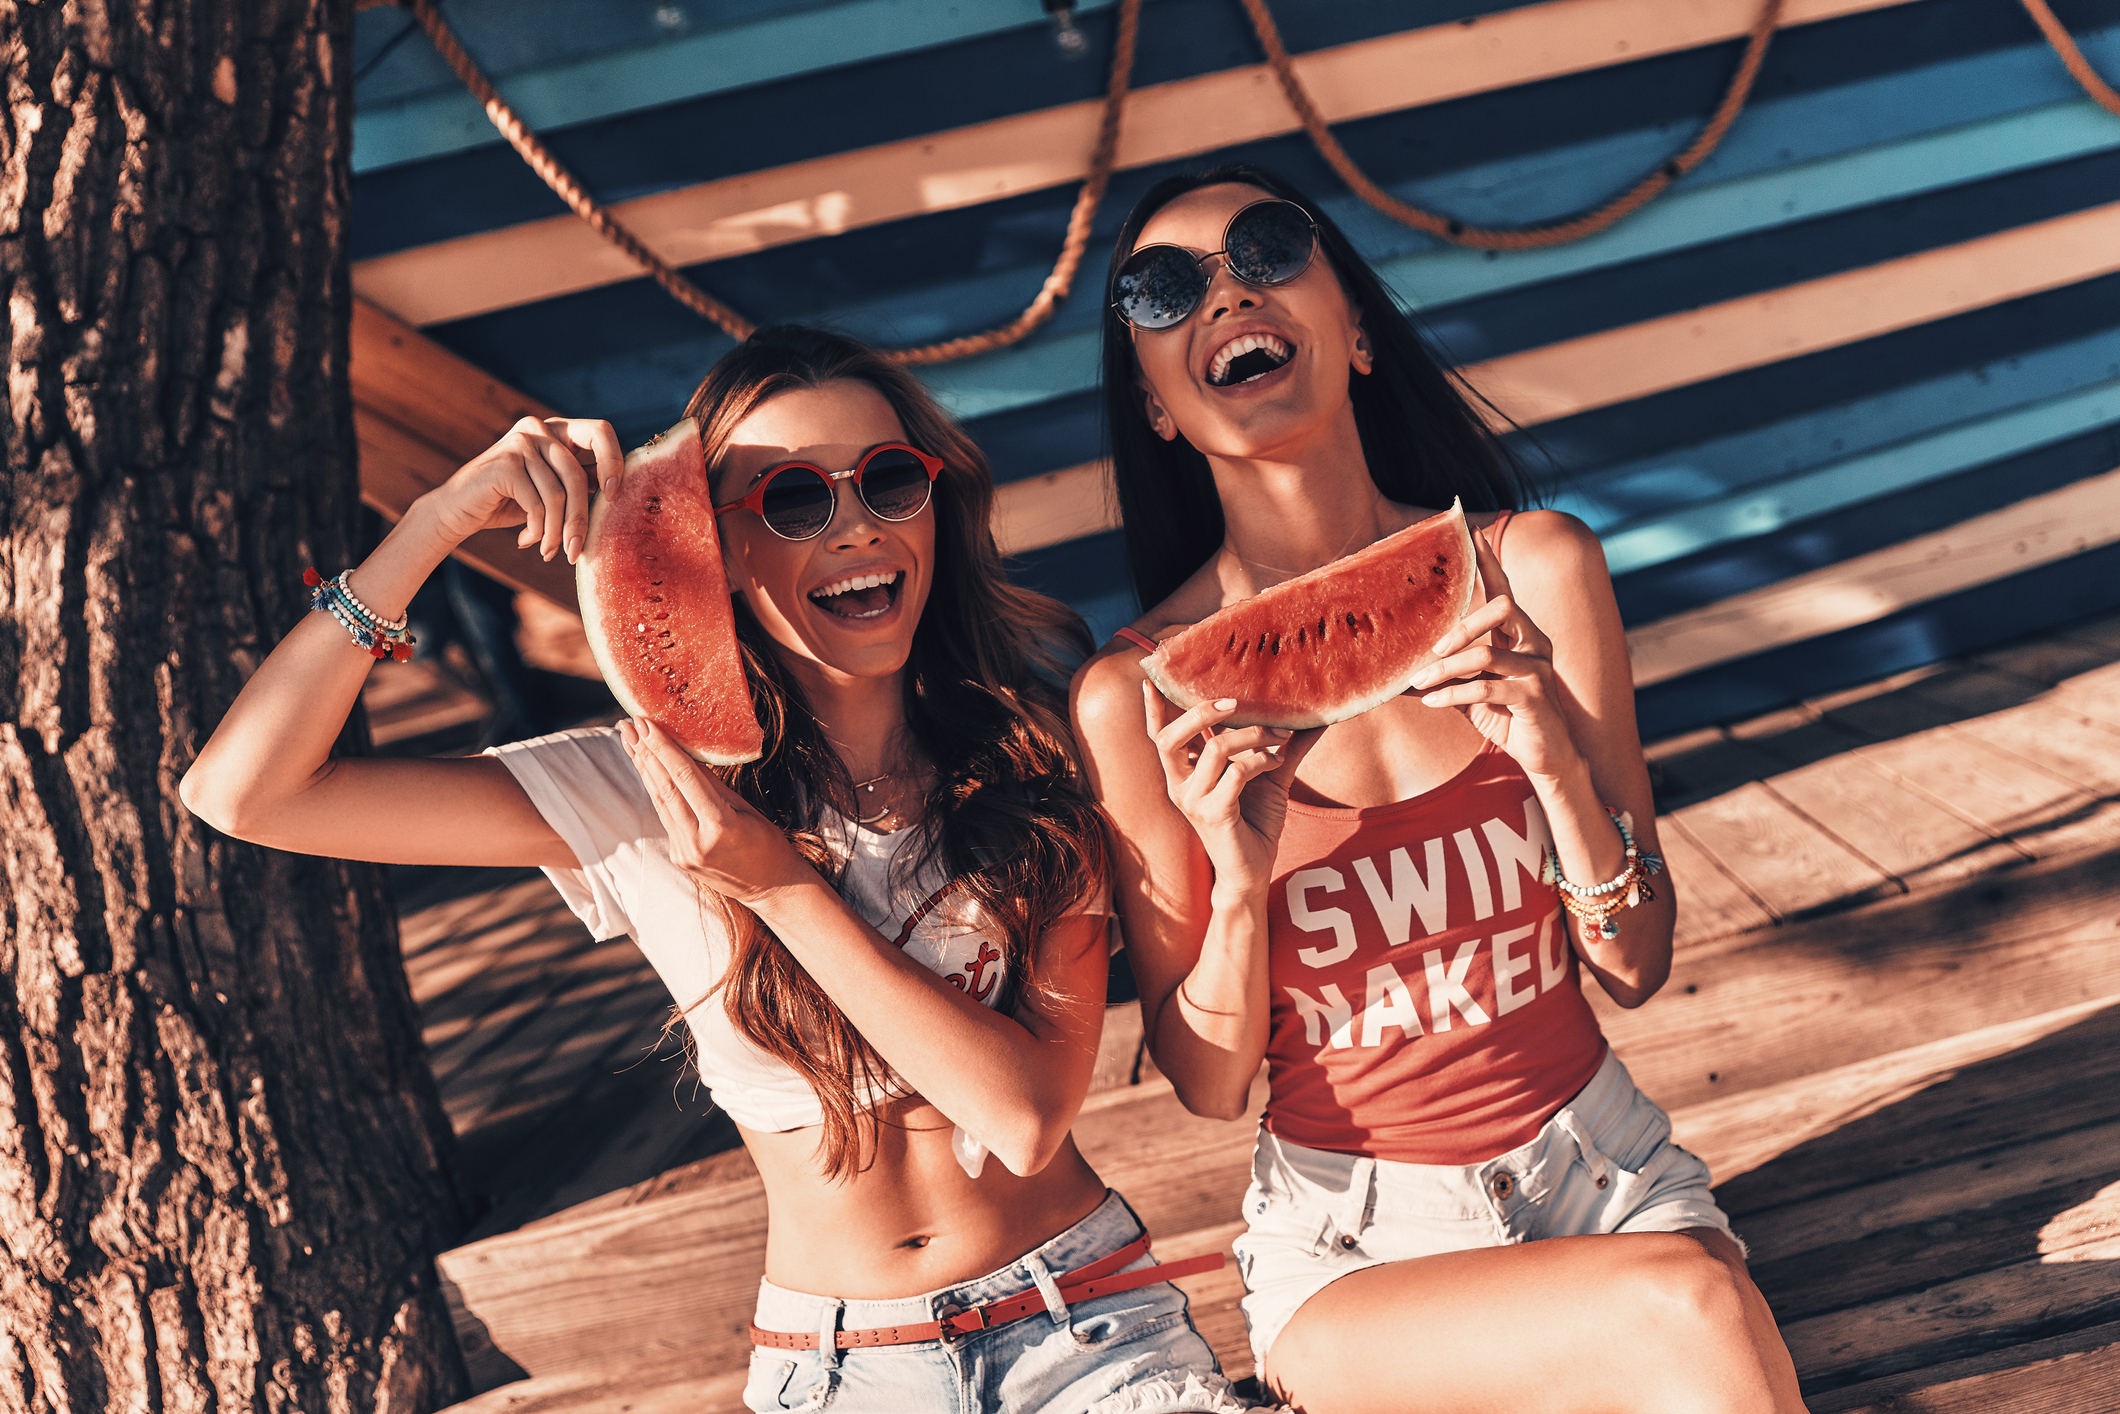 Top view of two attractive young women smiling and eating watermelon while sitting outdoors